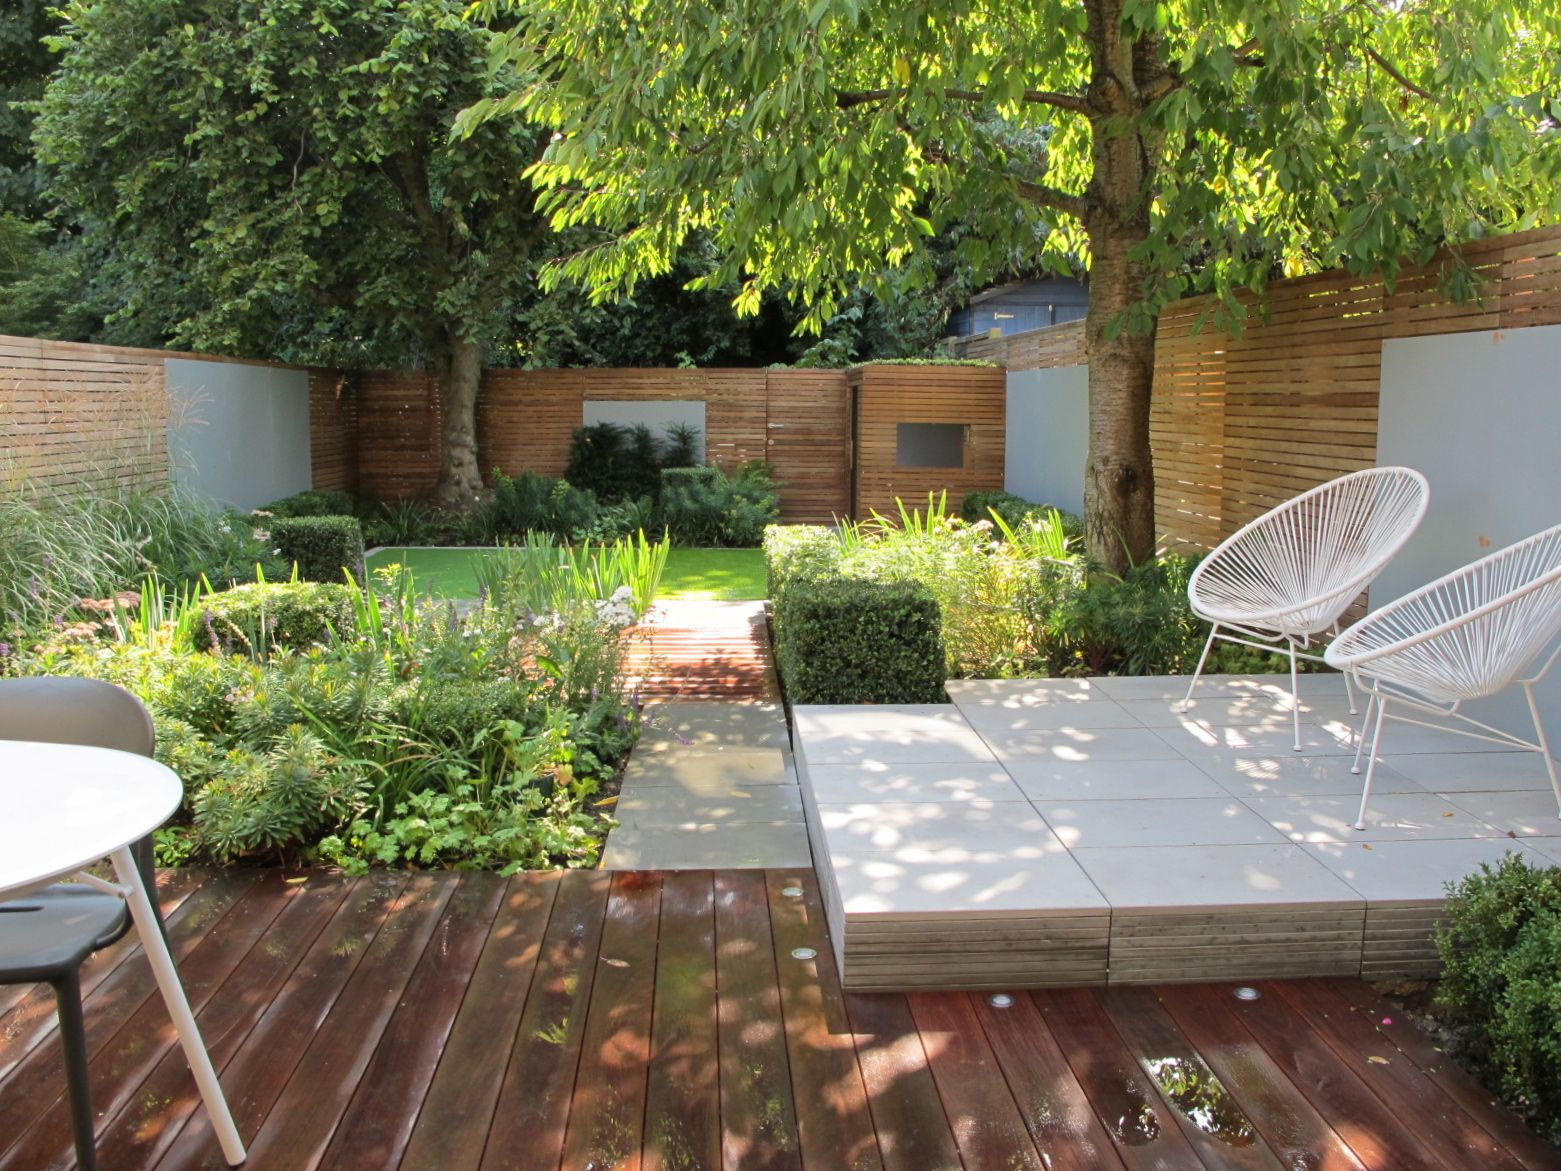 Small Garden Designs beautiful sunken design ideas for your garden Garden As Featured On Alan Titchmarshs Show Love Your Garden Itv North London Garden